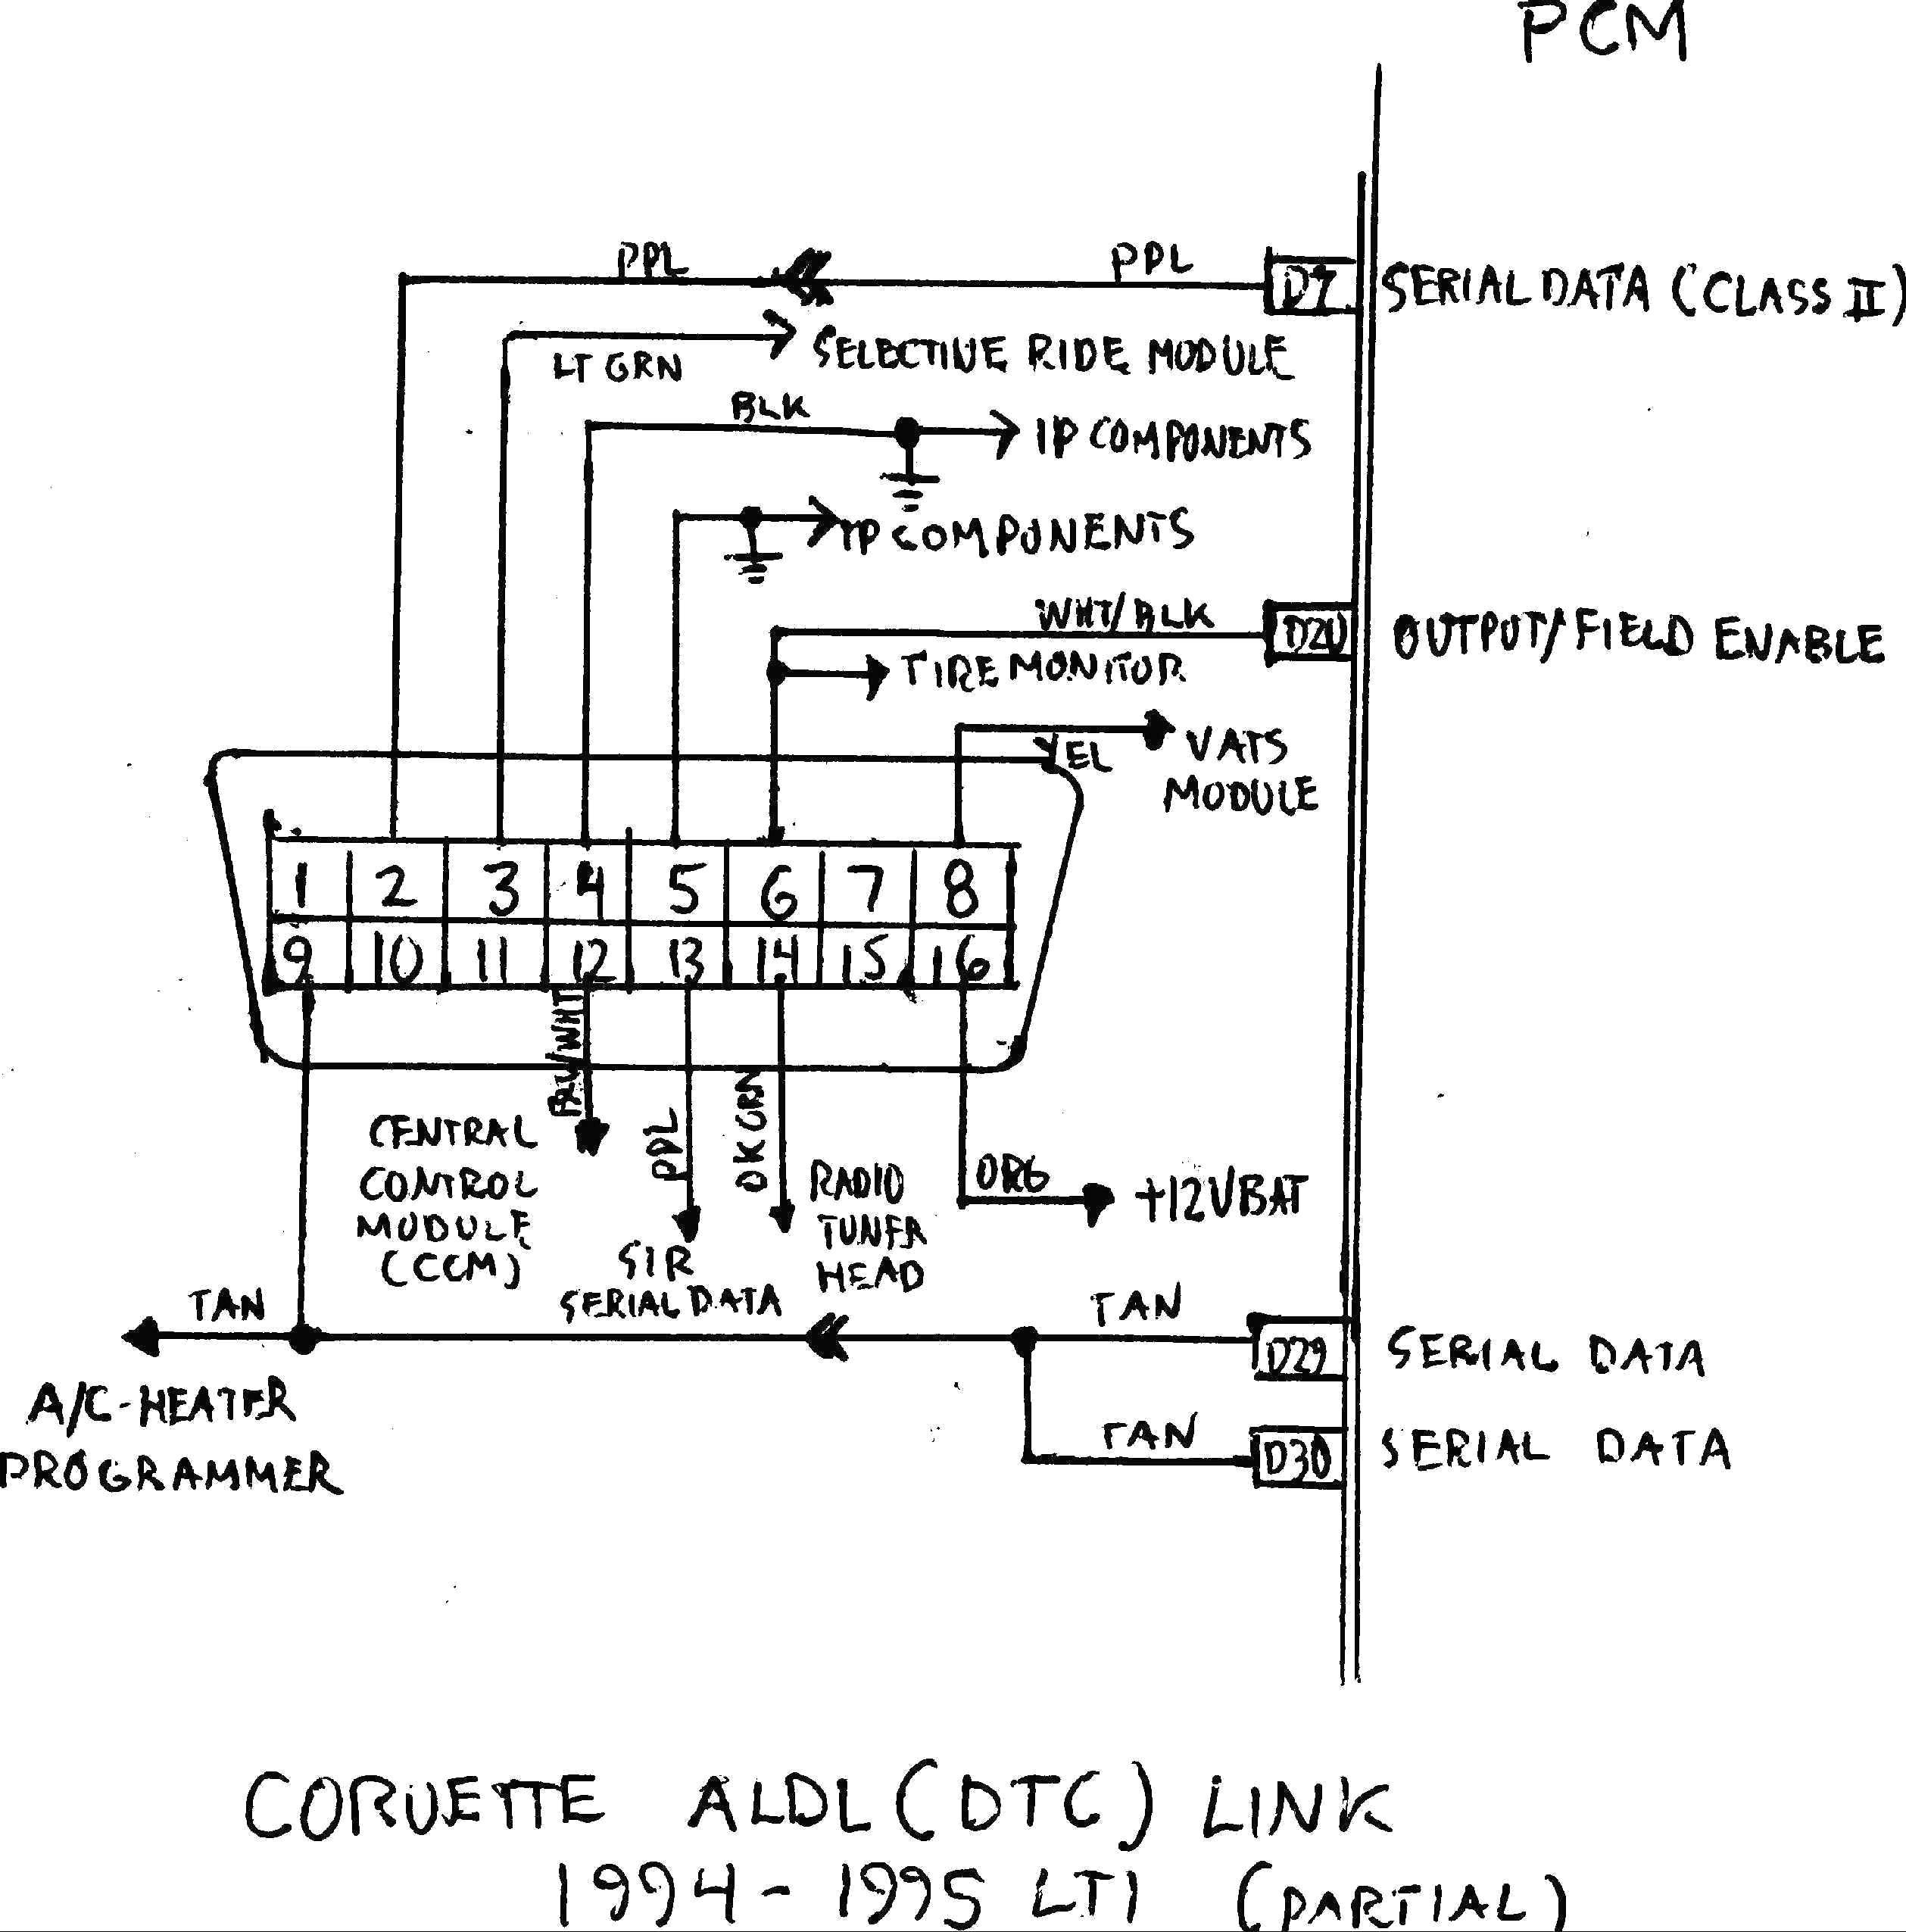 data link connector wiring diagram Download-98 altima obd2 connector diagram collection of wiring diagram u2022 rh wiringbase today 6-l